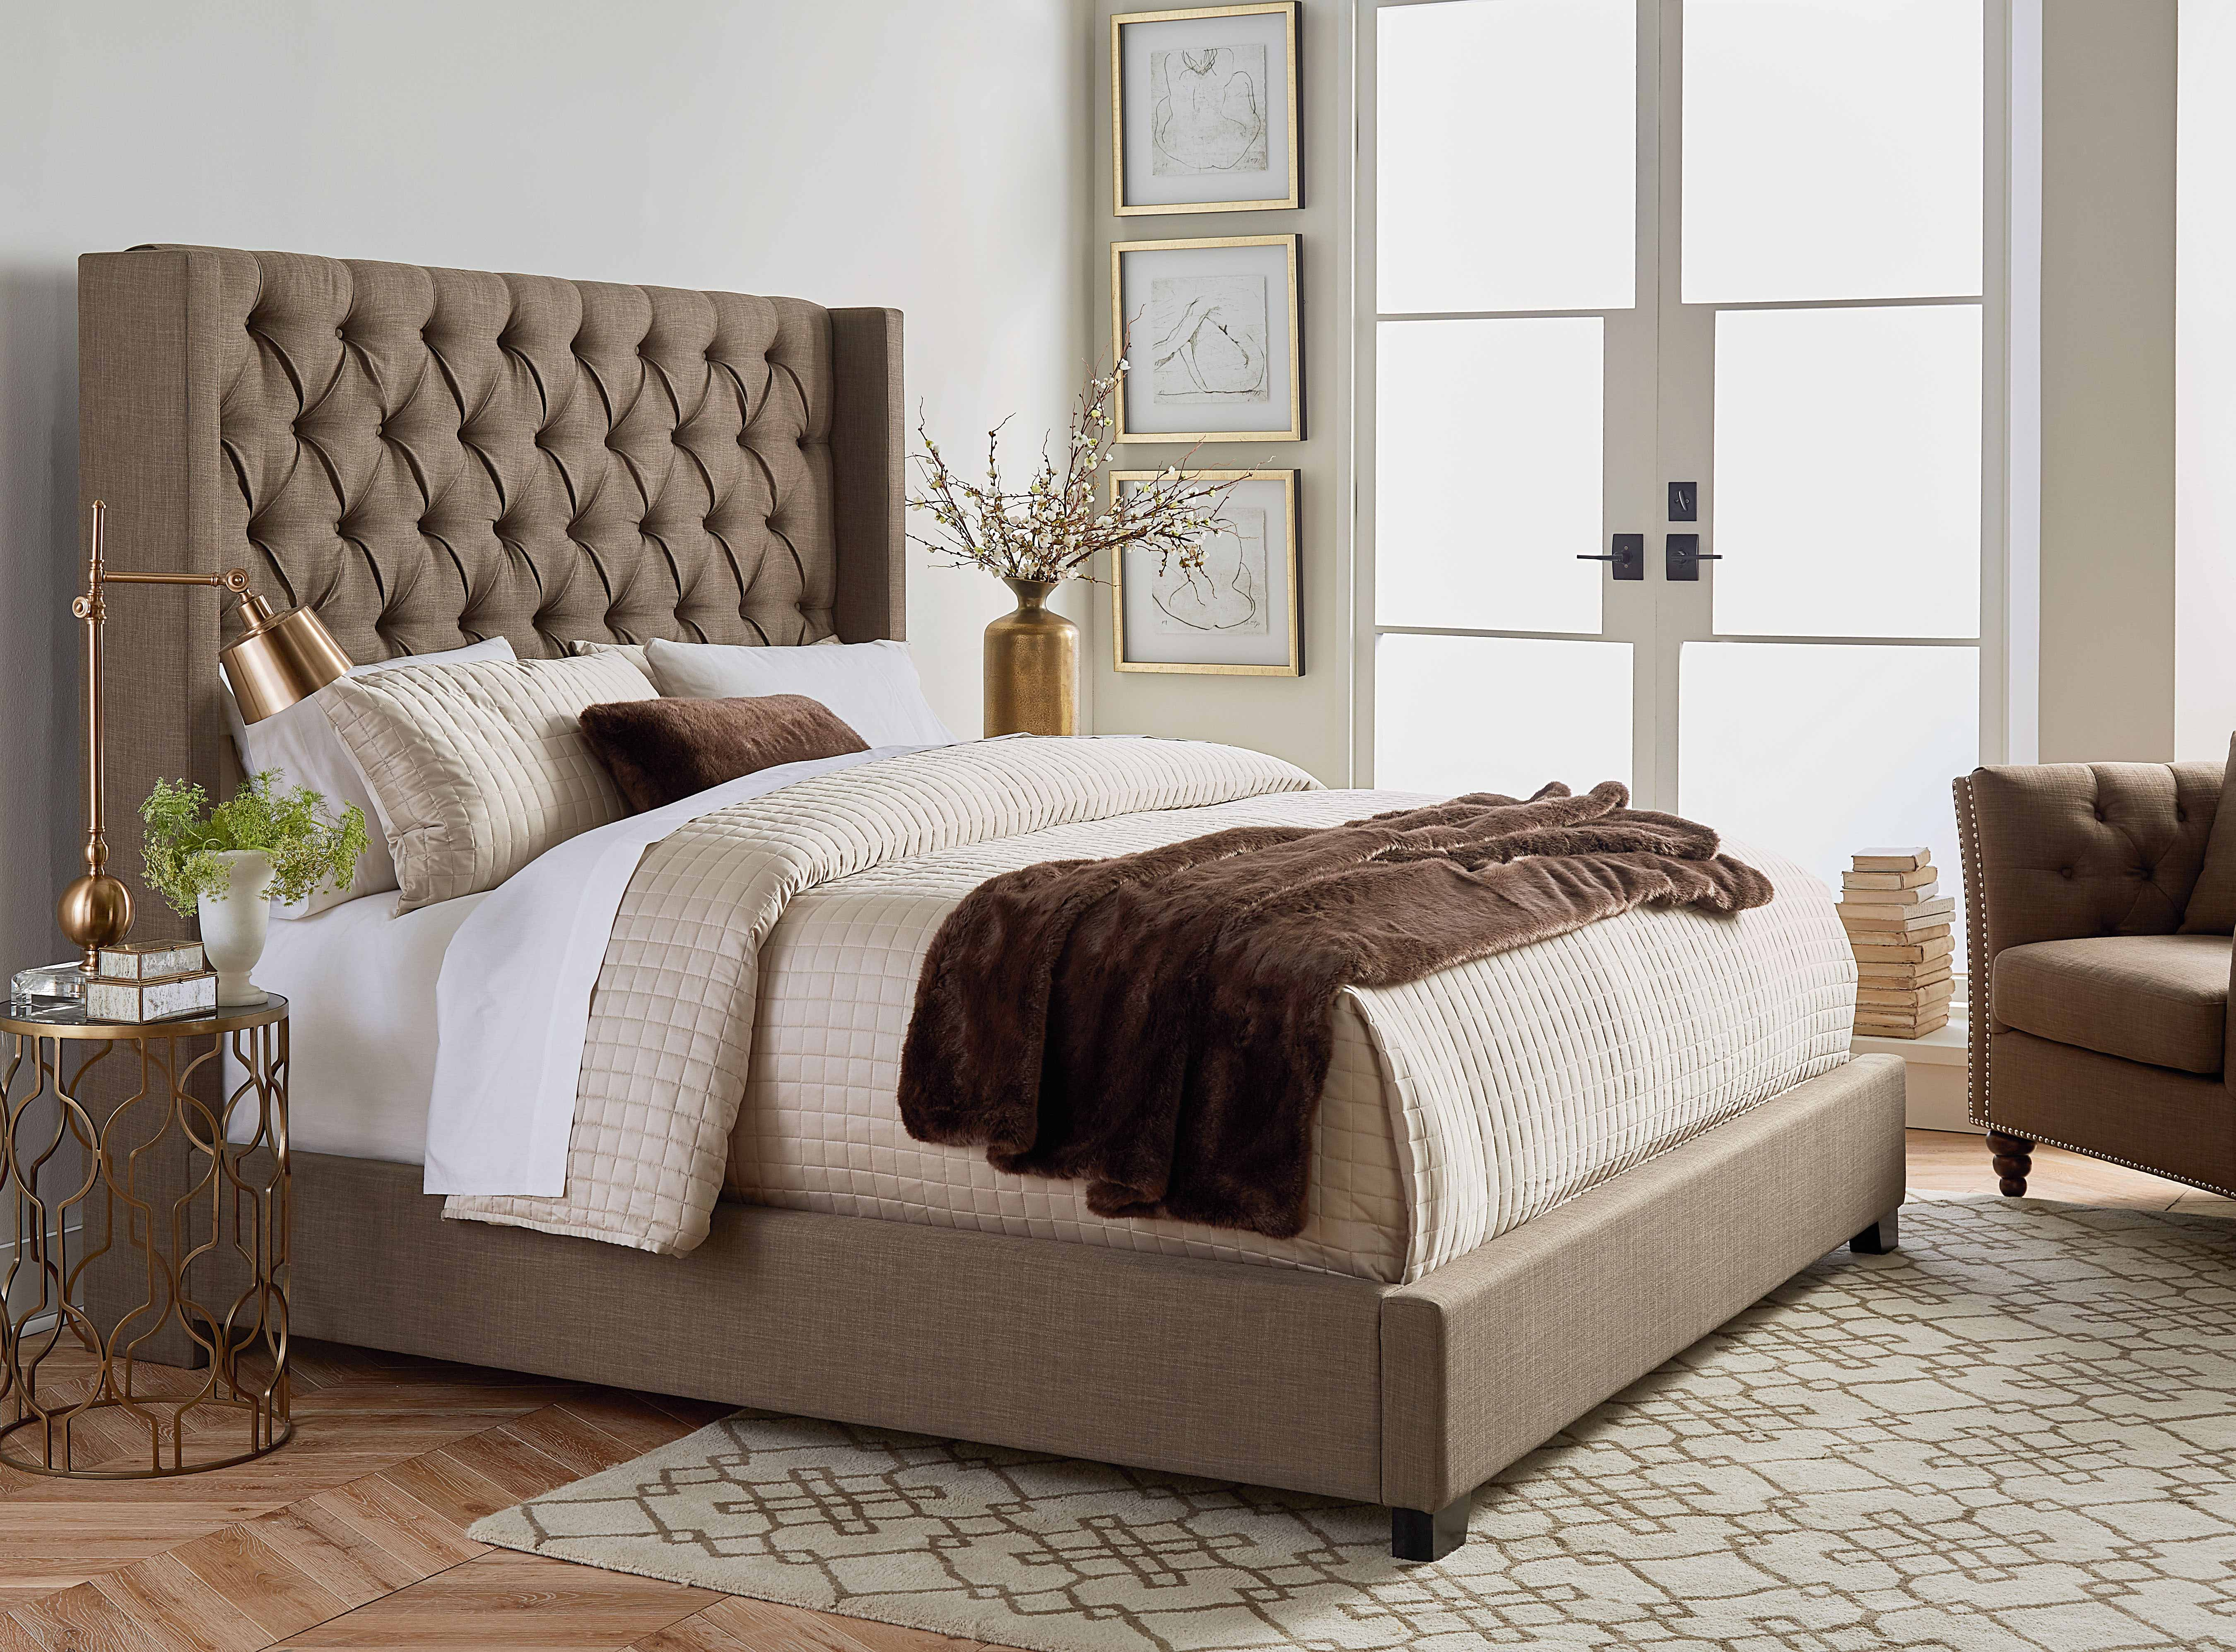 94250 Westerly Upholstered Bed Awfco Catalog Site